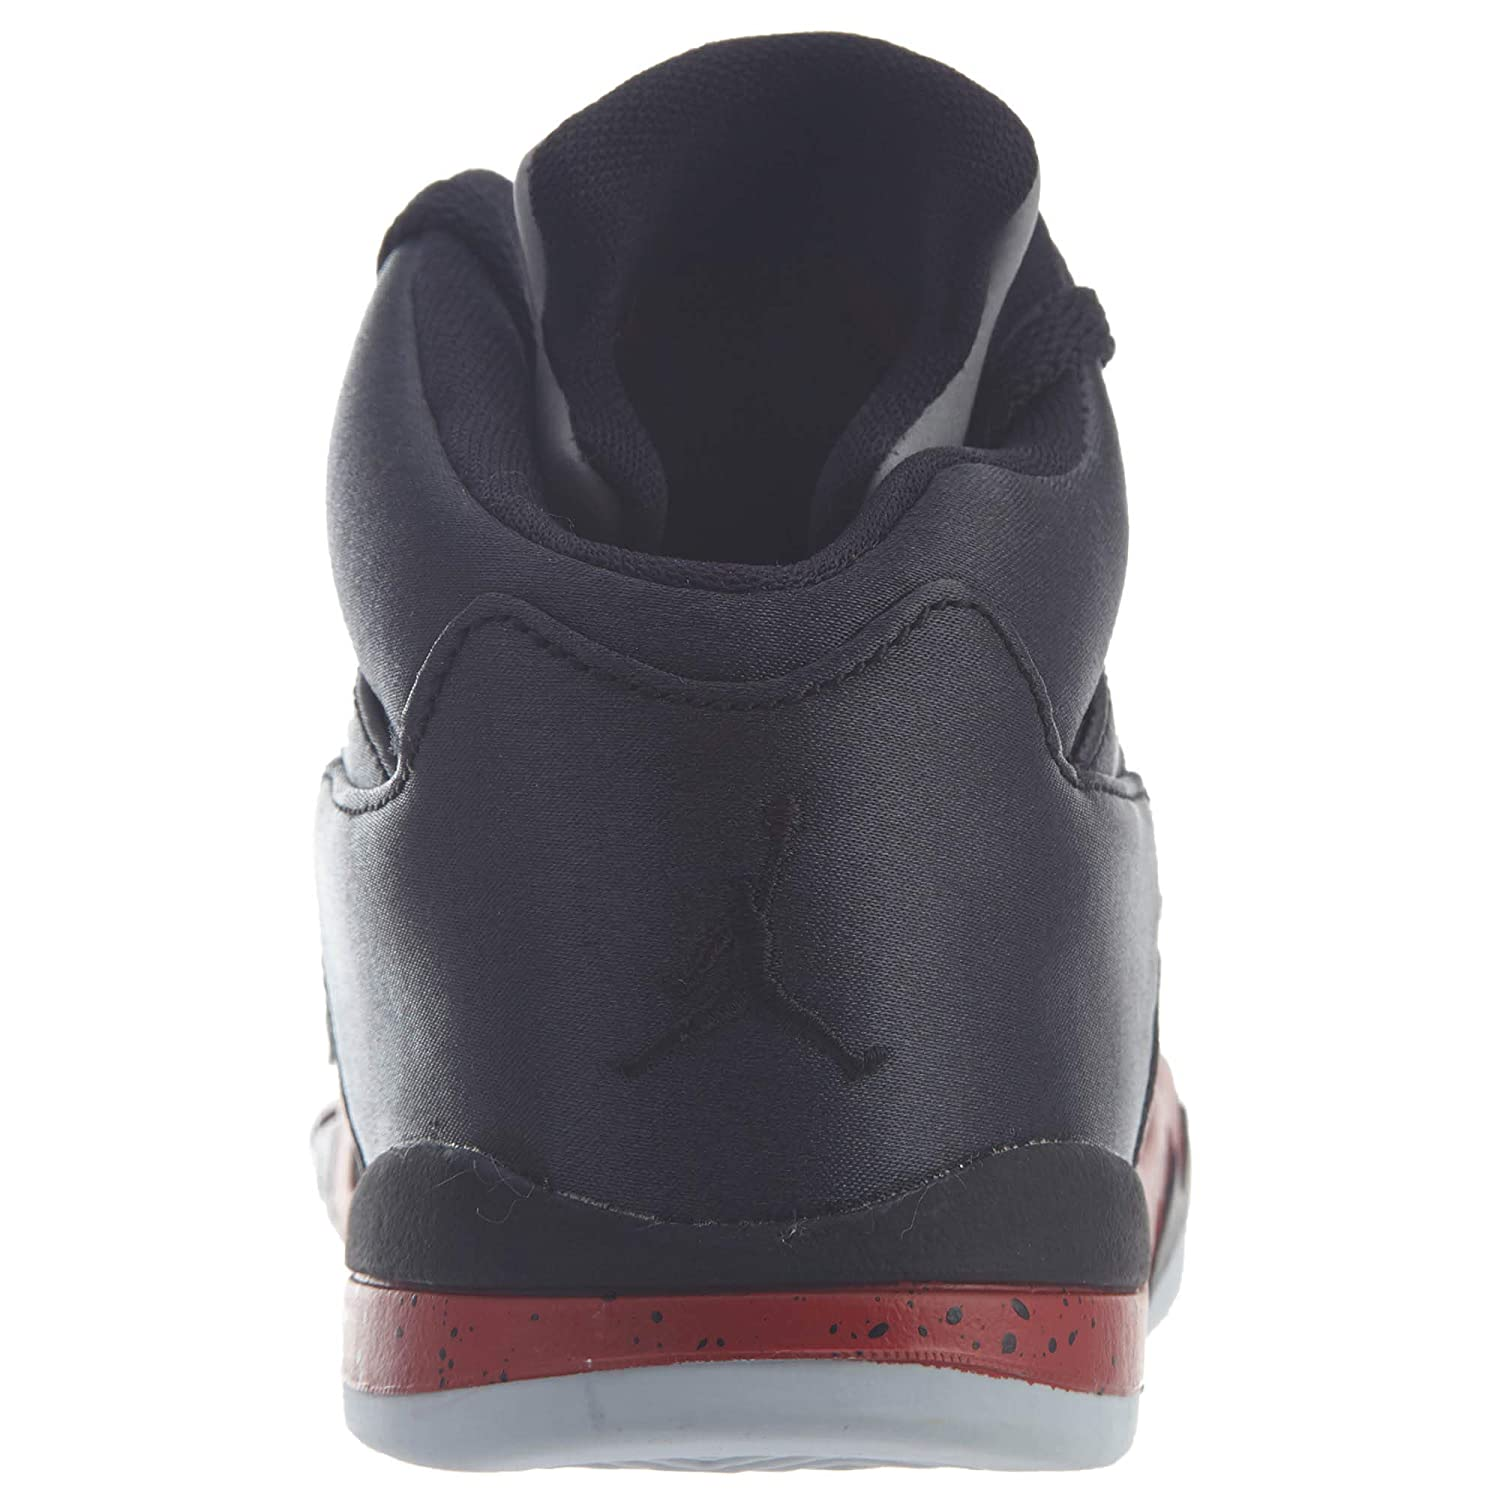 Jordan 5 Retro Satin Bred Toddlers